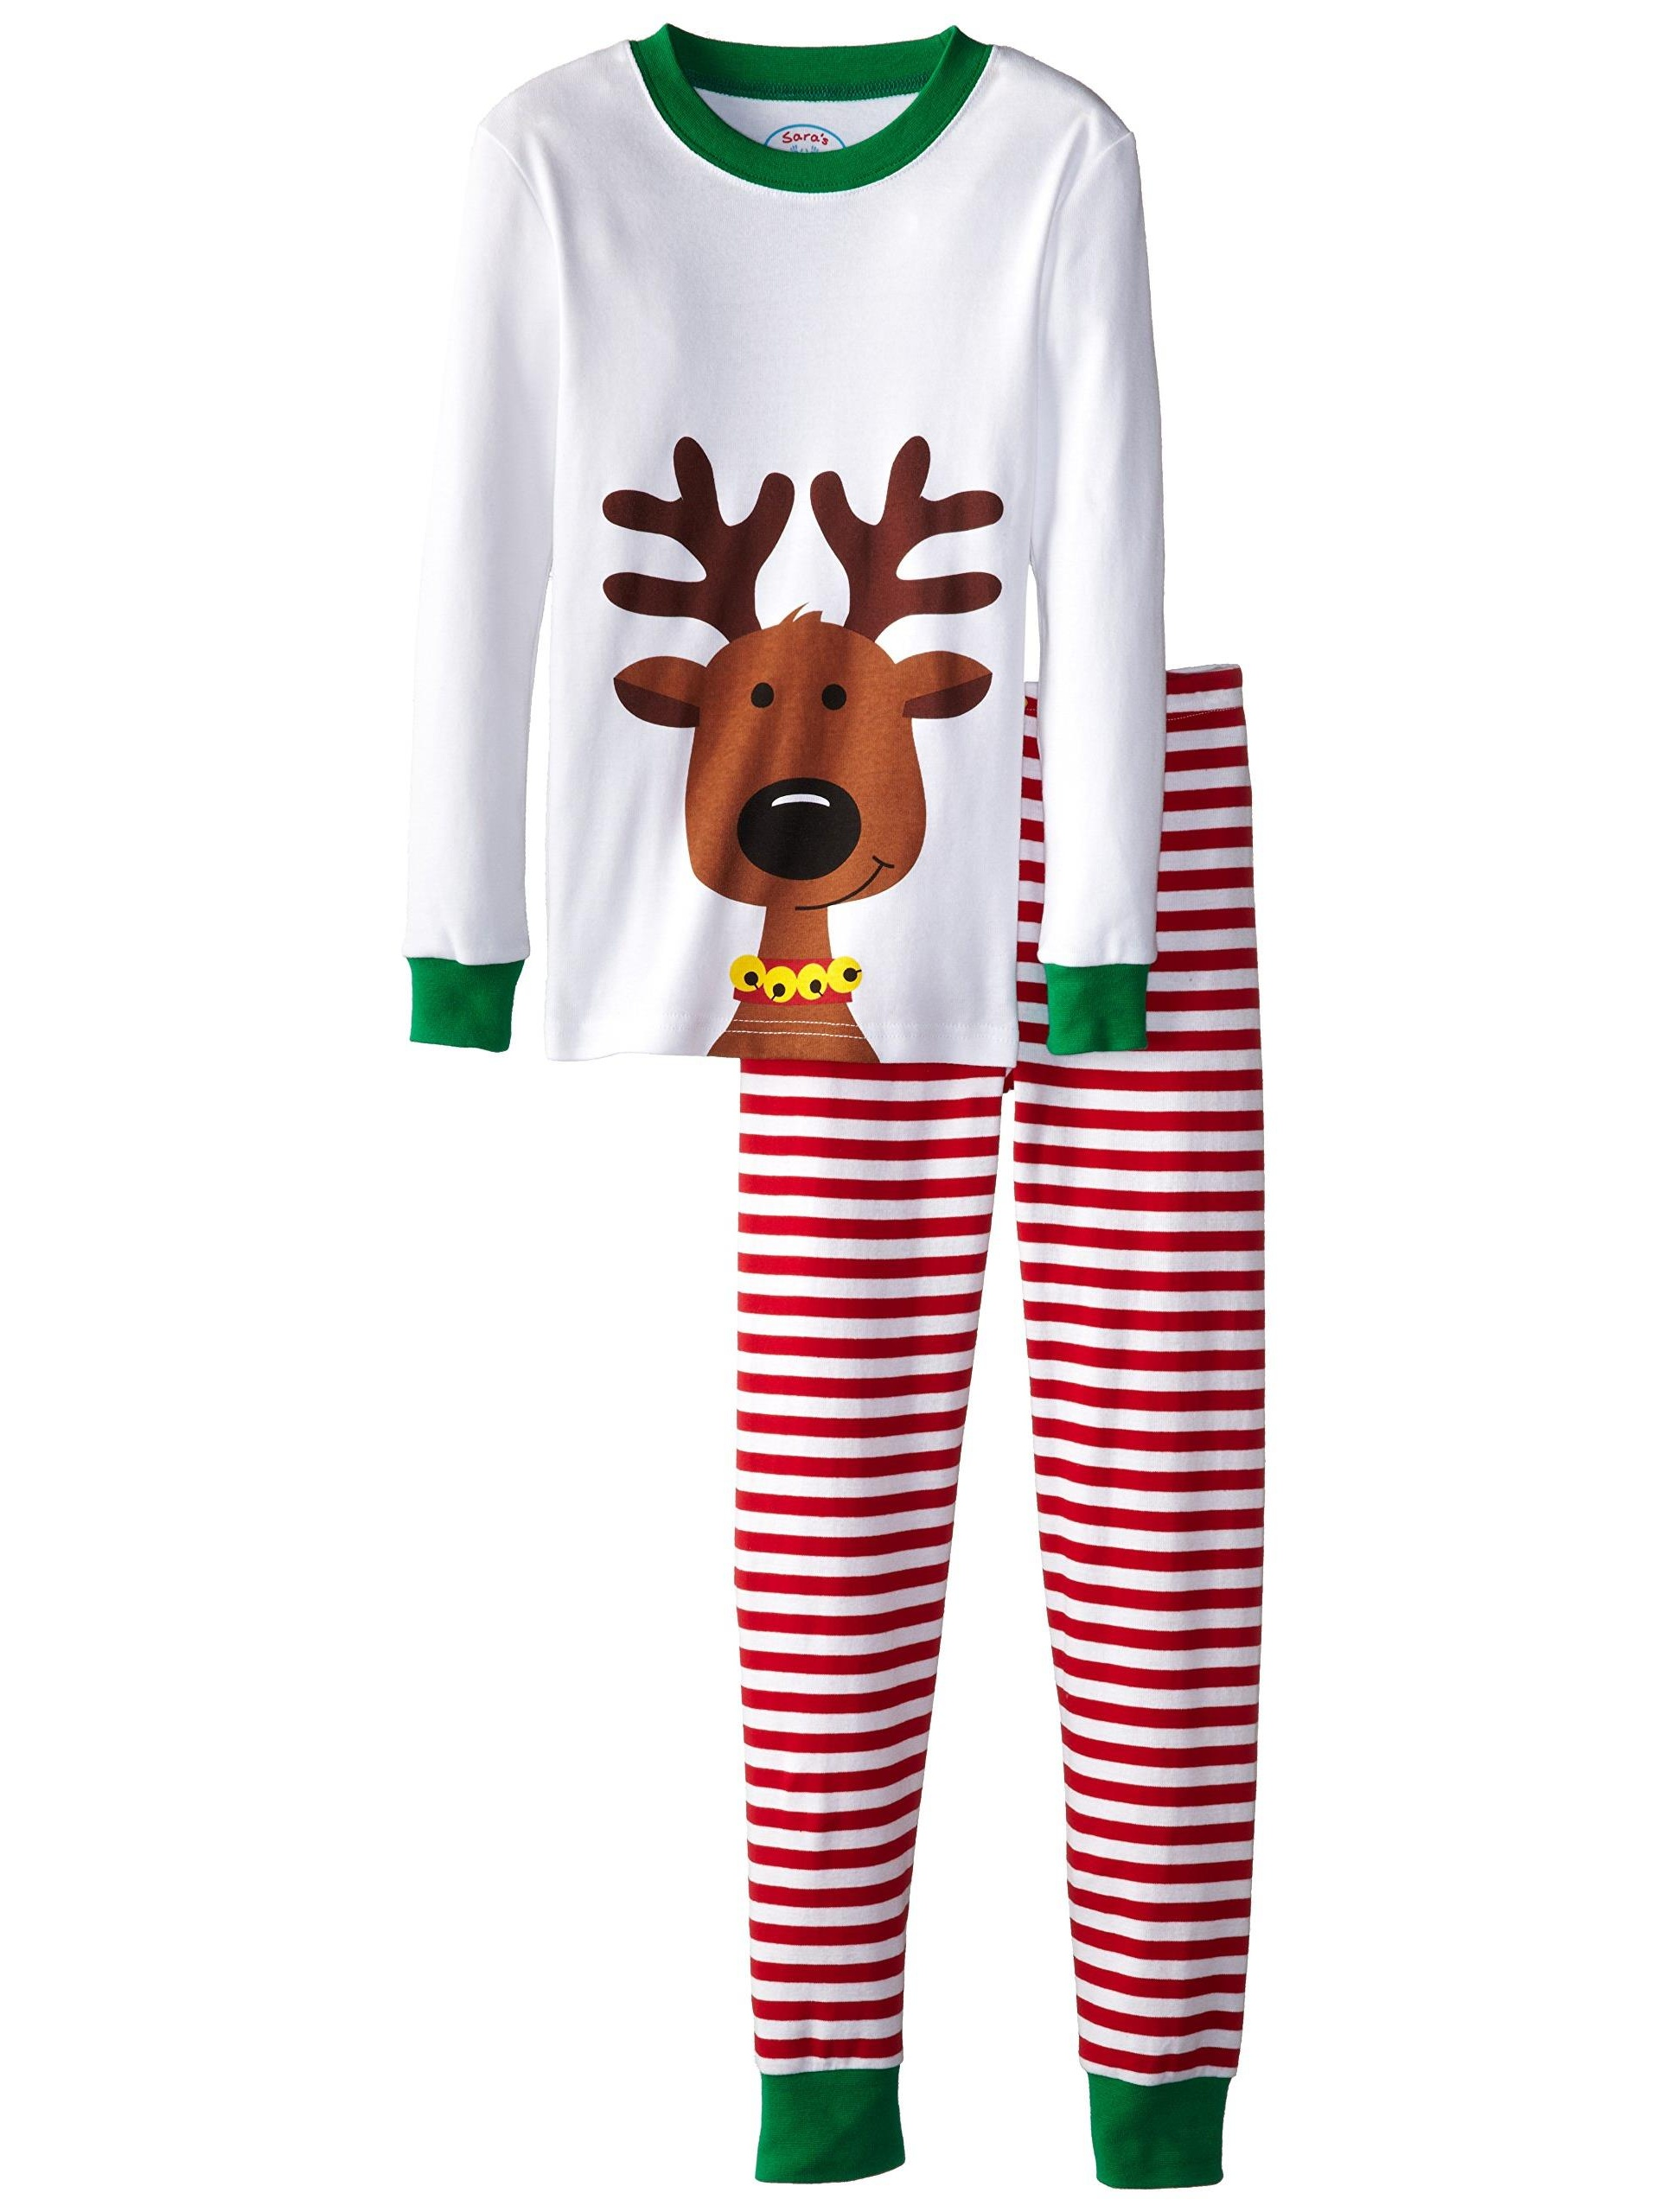 Sara's Prints Unisex Kids Long John Pajamas, Red Stripe/Reindeer, Size: 8